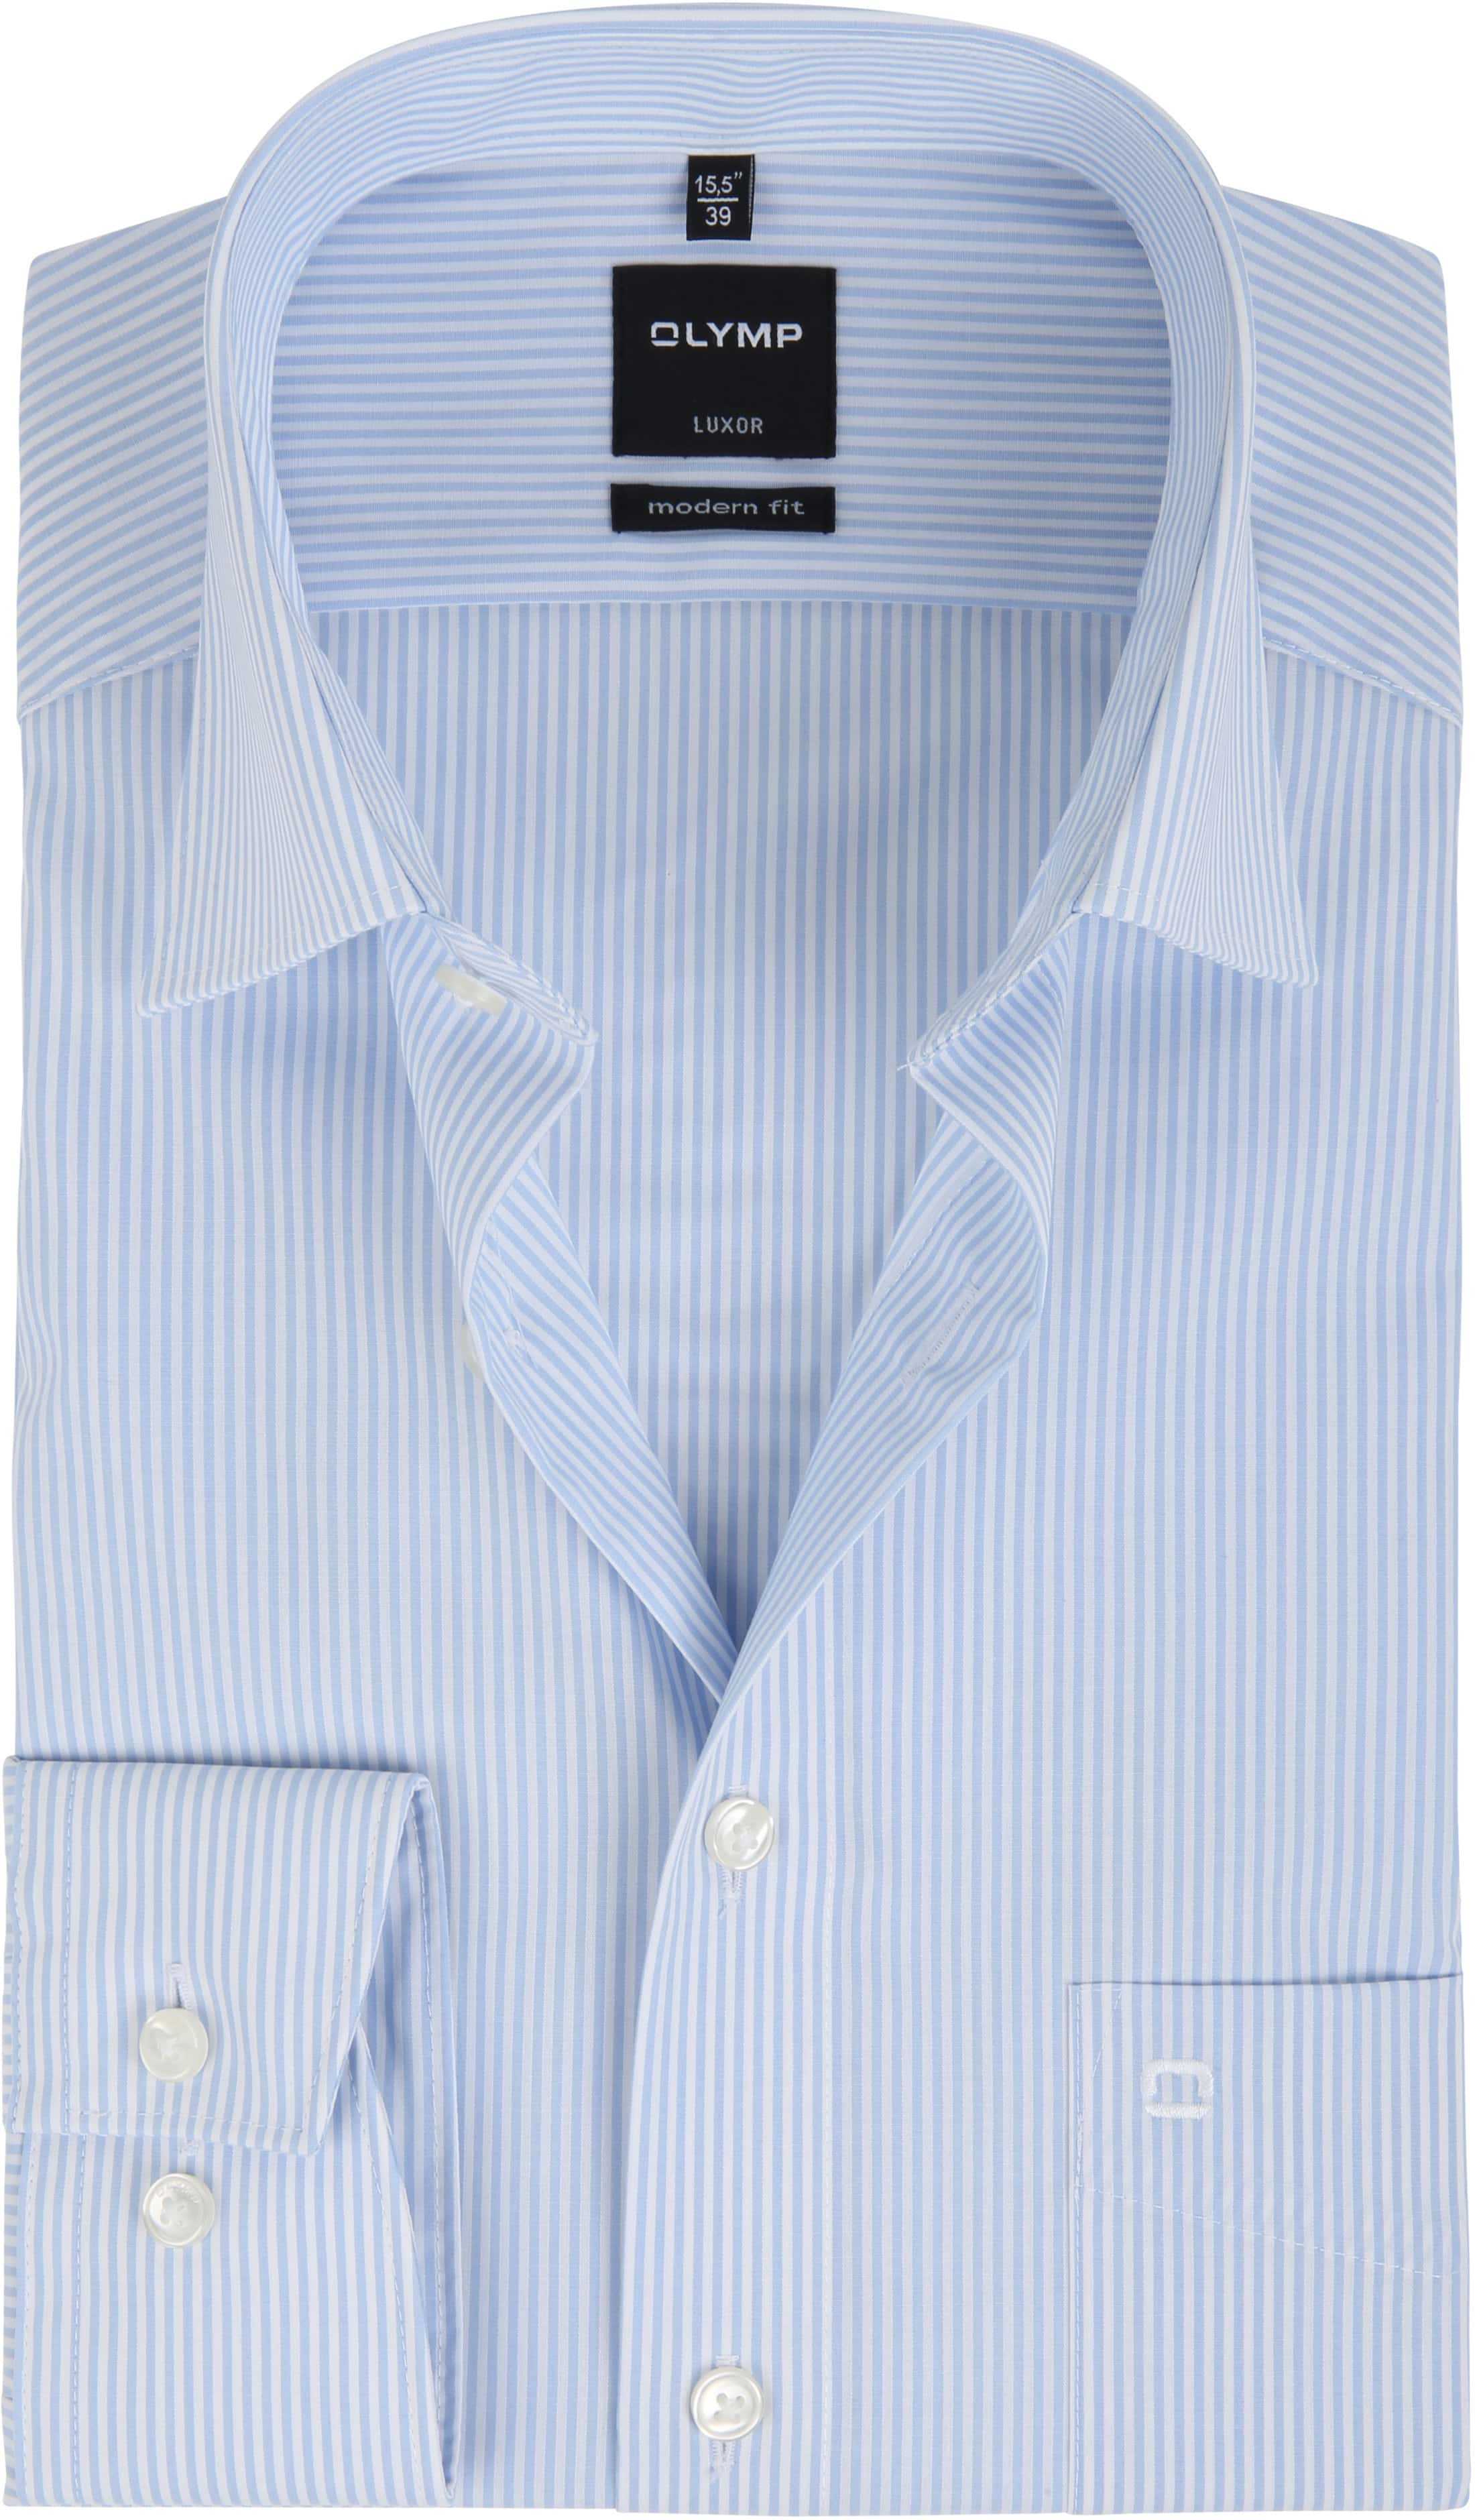 Olymp Luxor Shirt Light Blue Striped foto 0